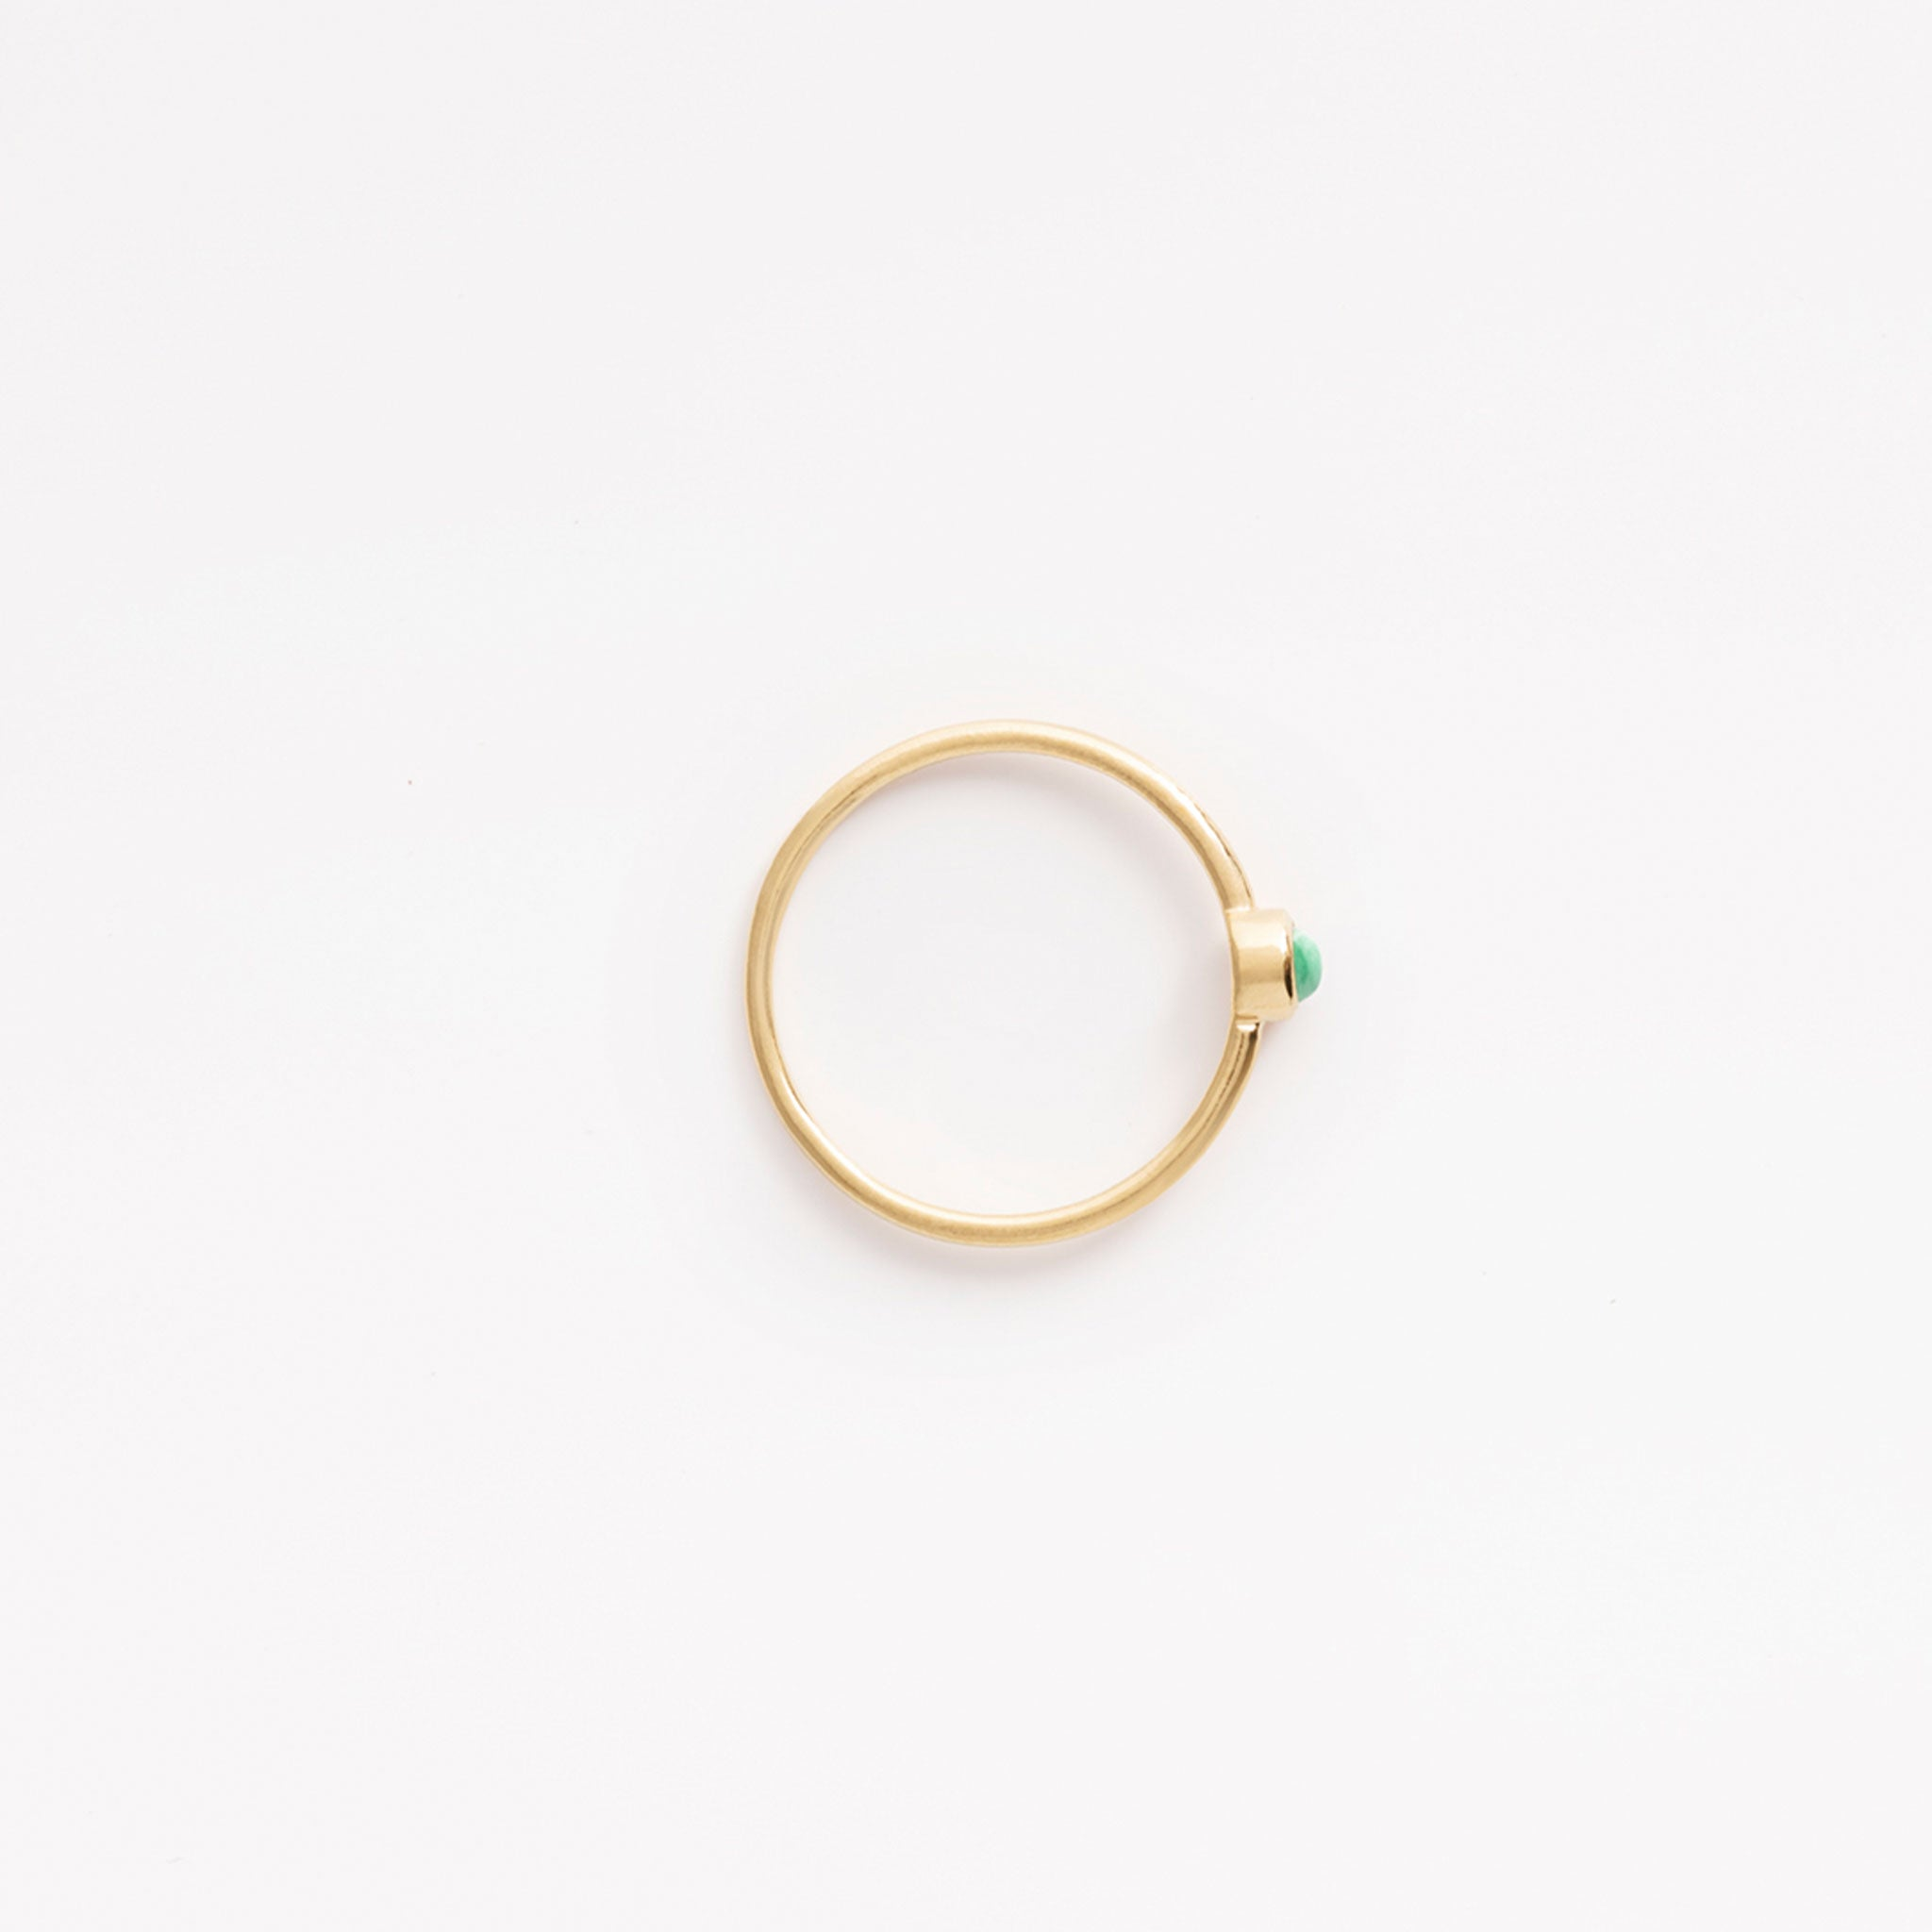 Wanderlust Life Birthstone Jewellery Collection. New May birthstone gold ring with semi precious emerald gemstone, the perfect gift of jewellery. Wanderlust Life handmade jewellery in the UK.